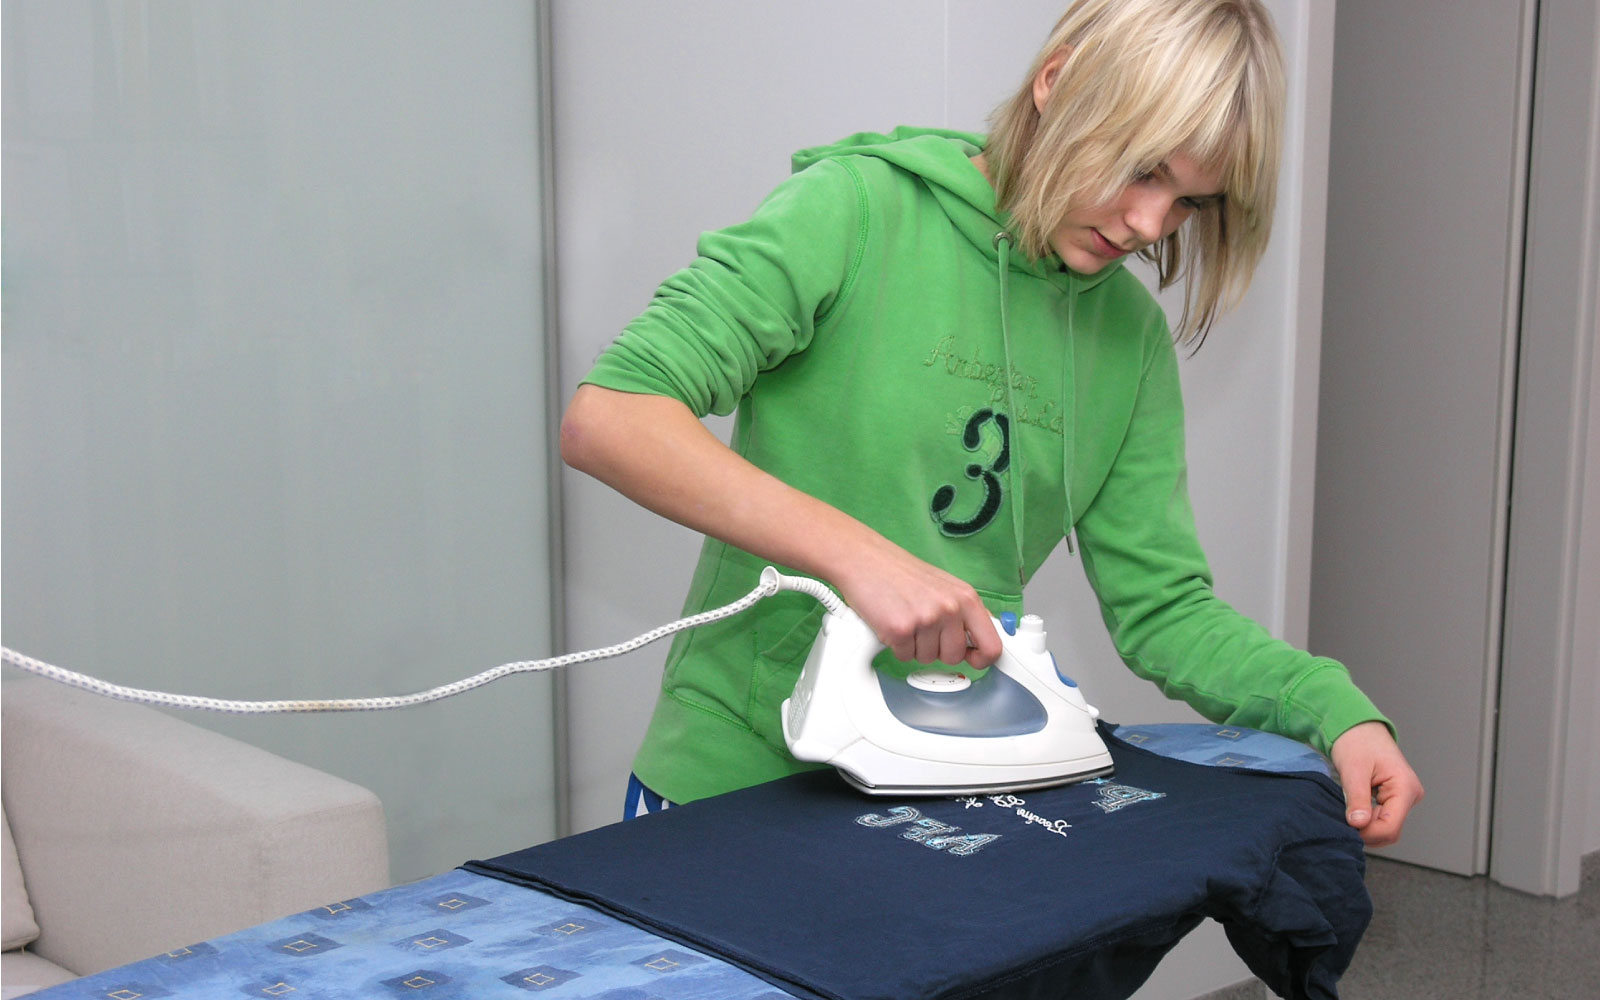 Just ONE Health and Social Care | Providing Care, Support & Accomodation | Ironing teenager